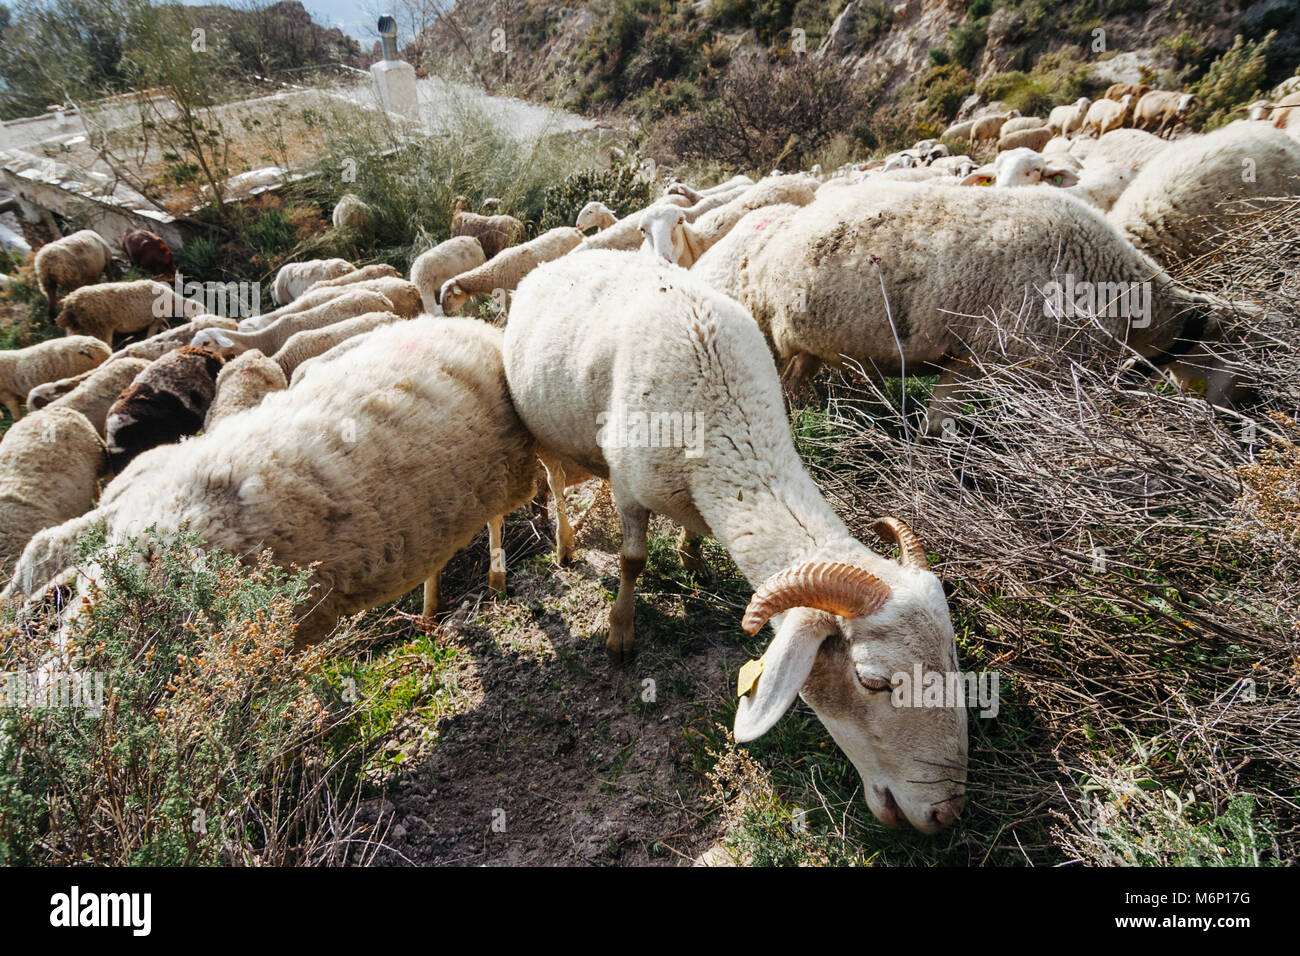 Goats and sheeps grazing by a cortijo Andalusian rural house in the Sierra Nevada mountains. Las Alpujarras, Granada - Stock Image